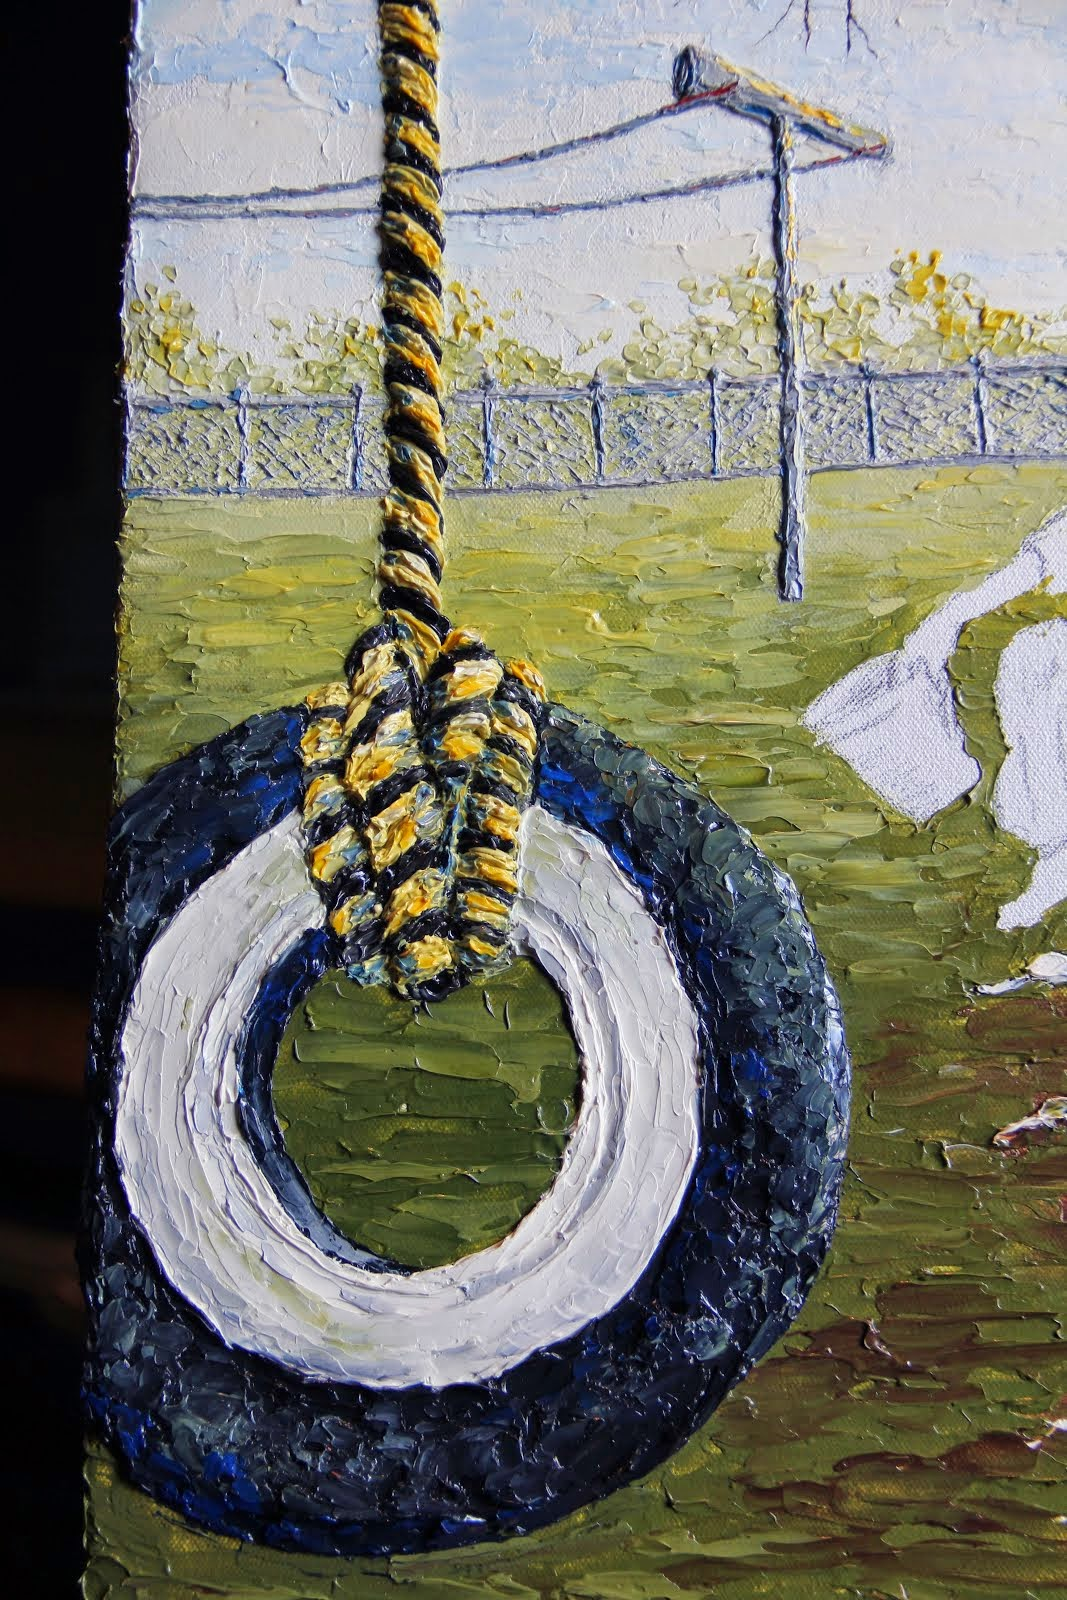 VIDEO-Painting a rope with a palette knife